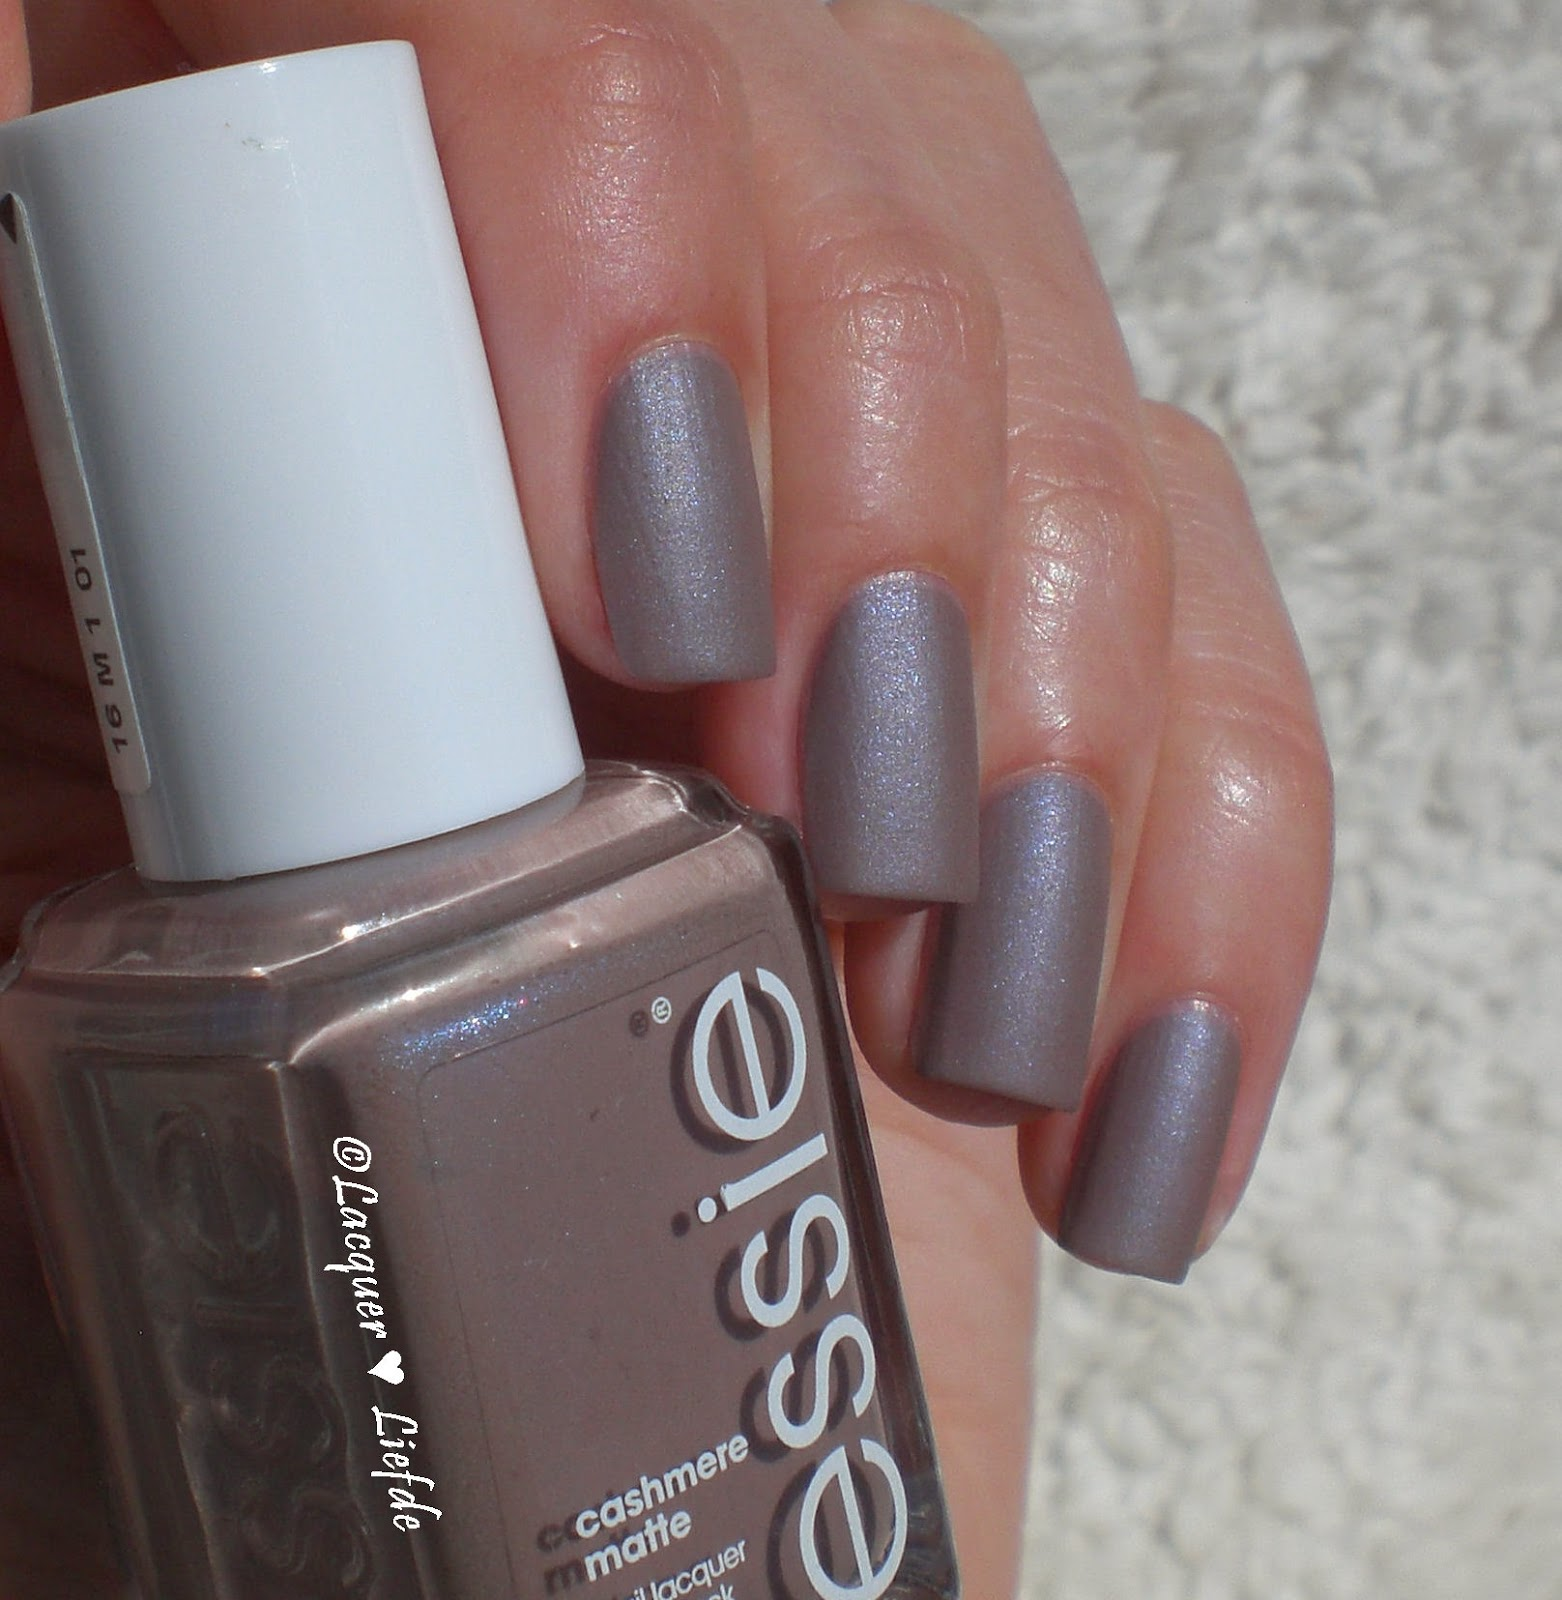 Cashmere Matte Collection - Cozy in Cashmere/ Comfy in cashmere